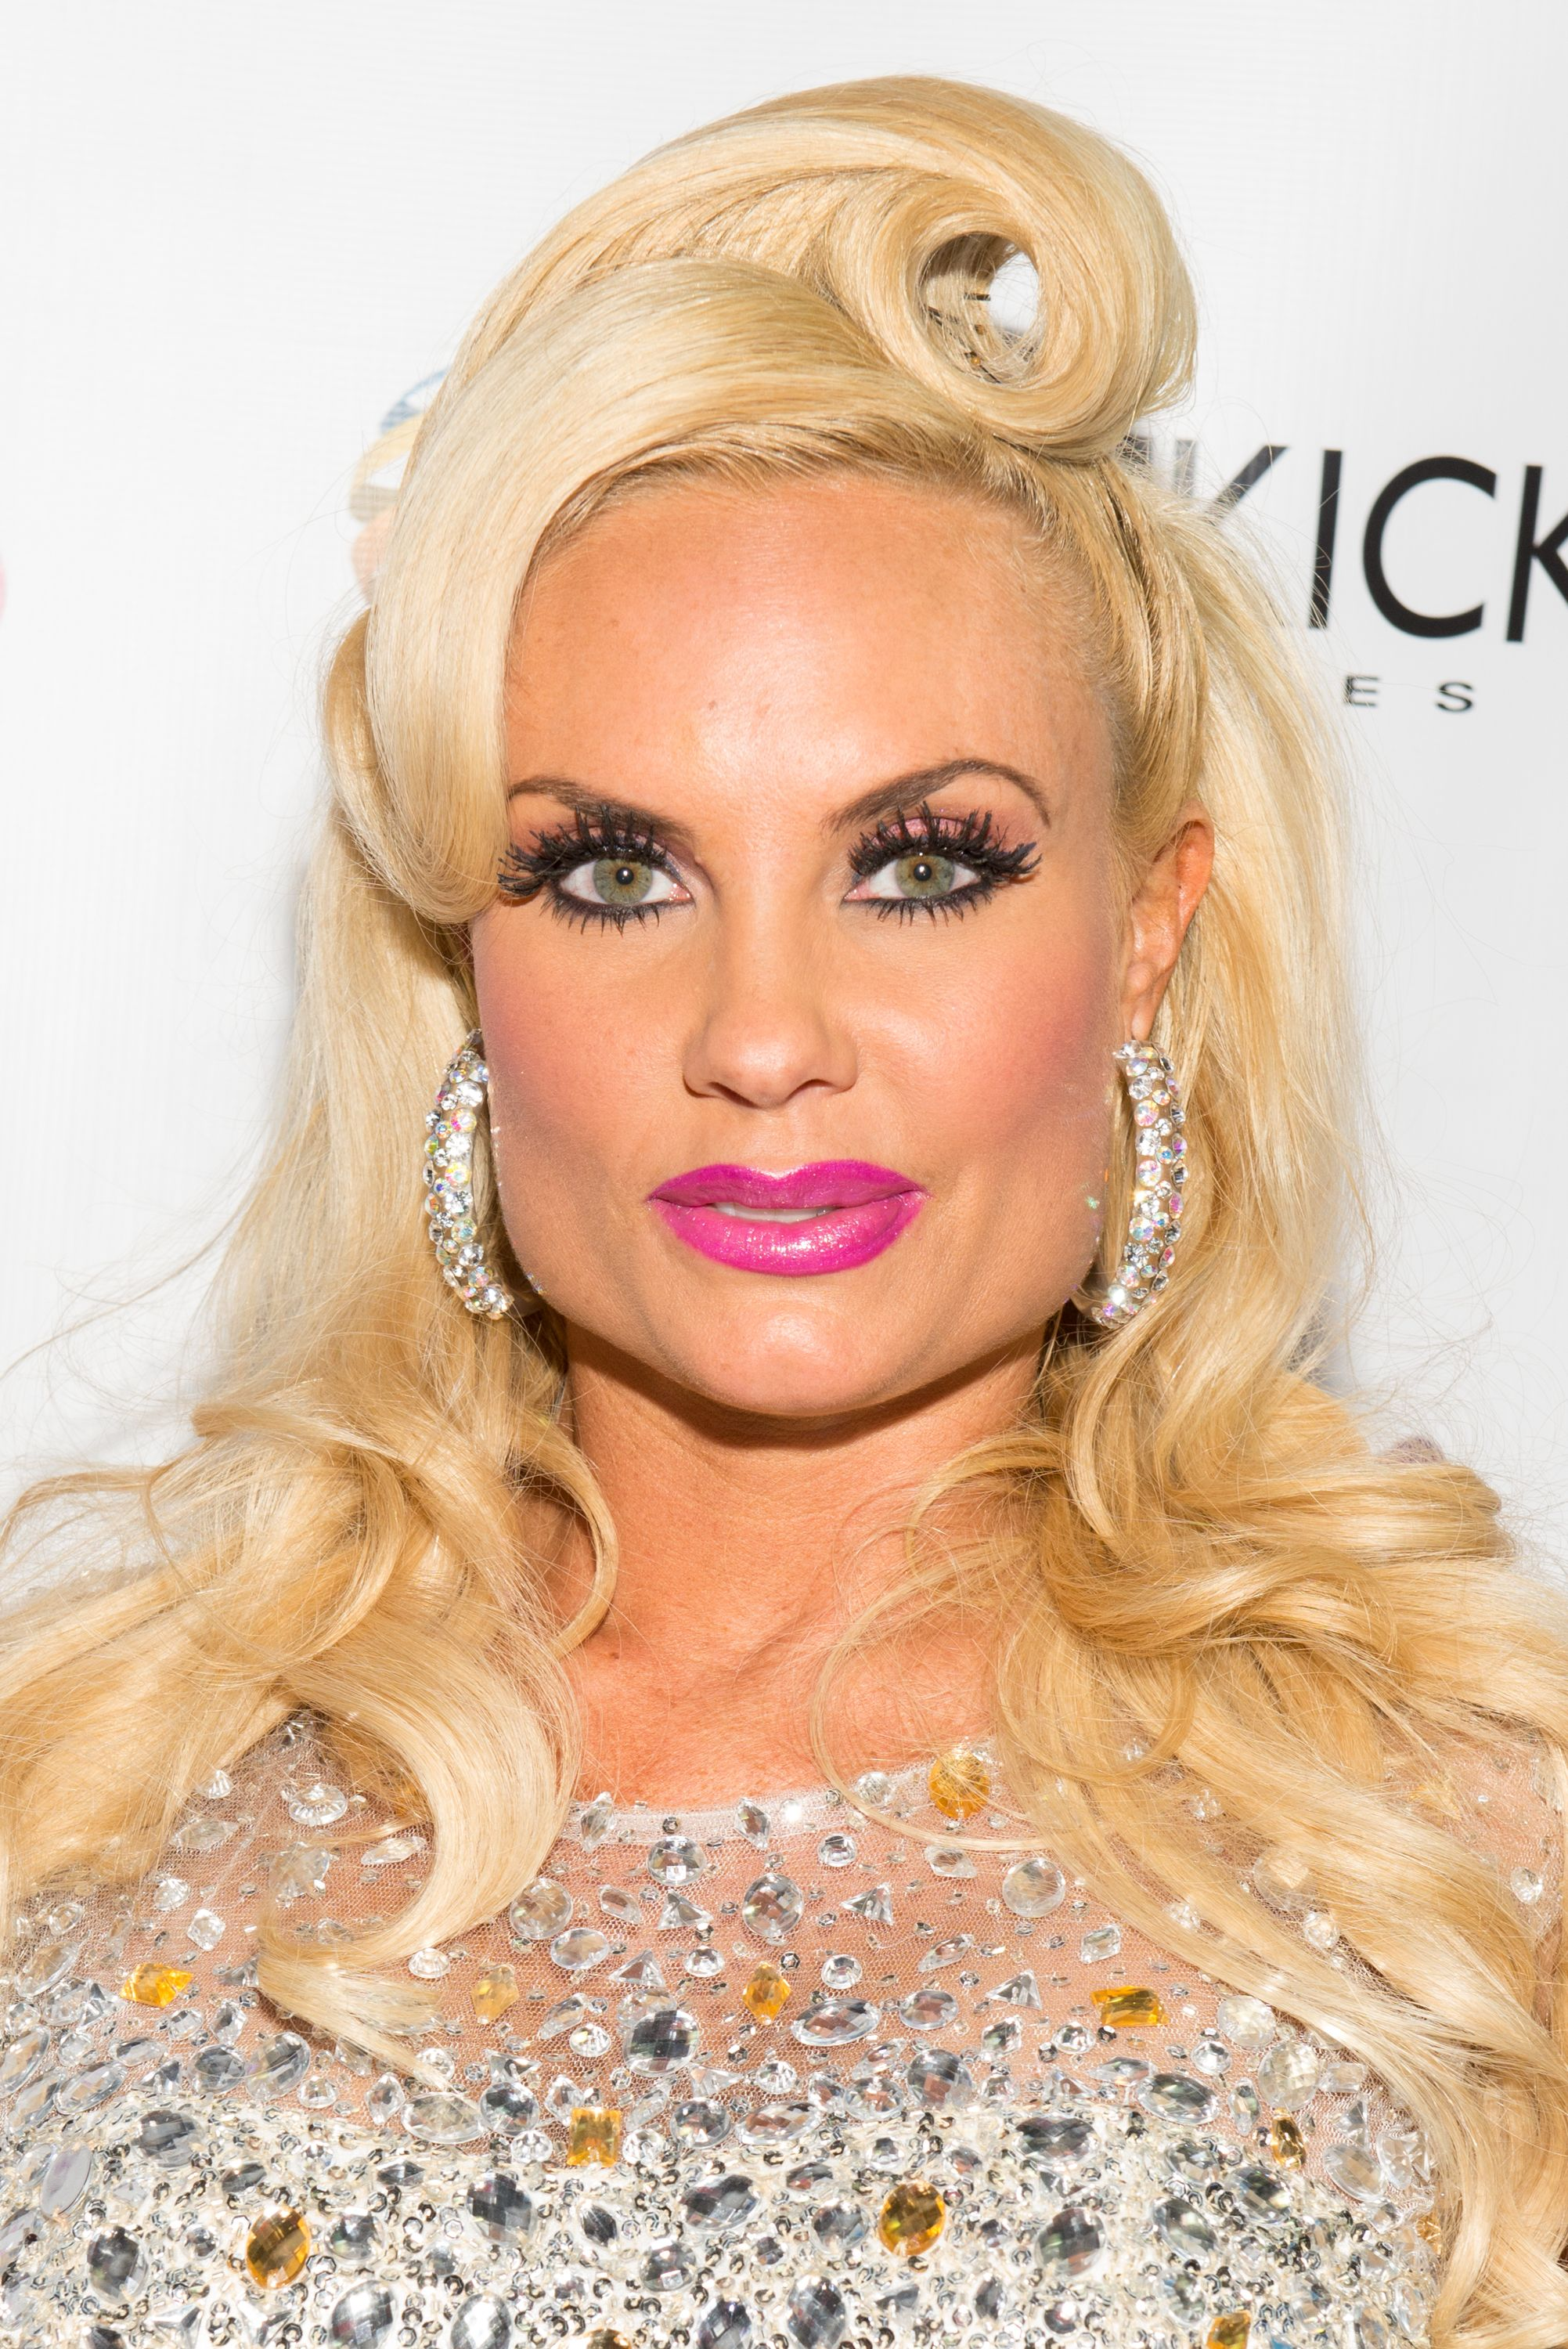 Coco Austin at the Coco & The Vanity Vixens at Highline Ballroom on May 12, 2014 in New York City. | Source: Getty Images